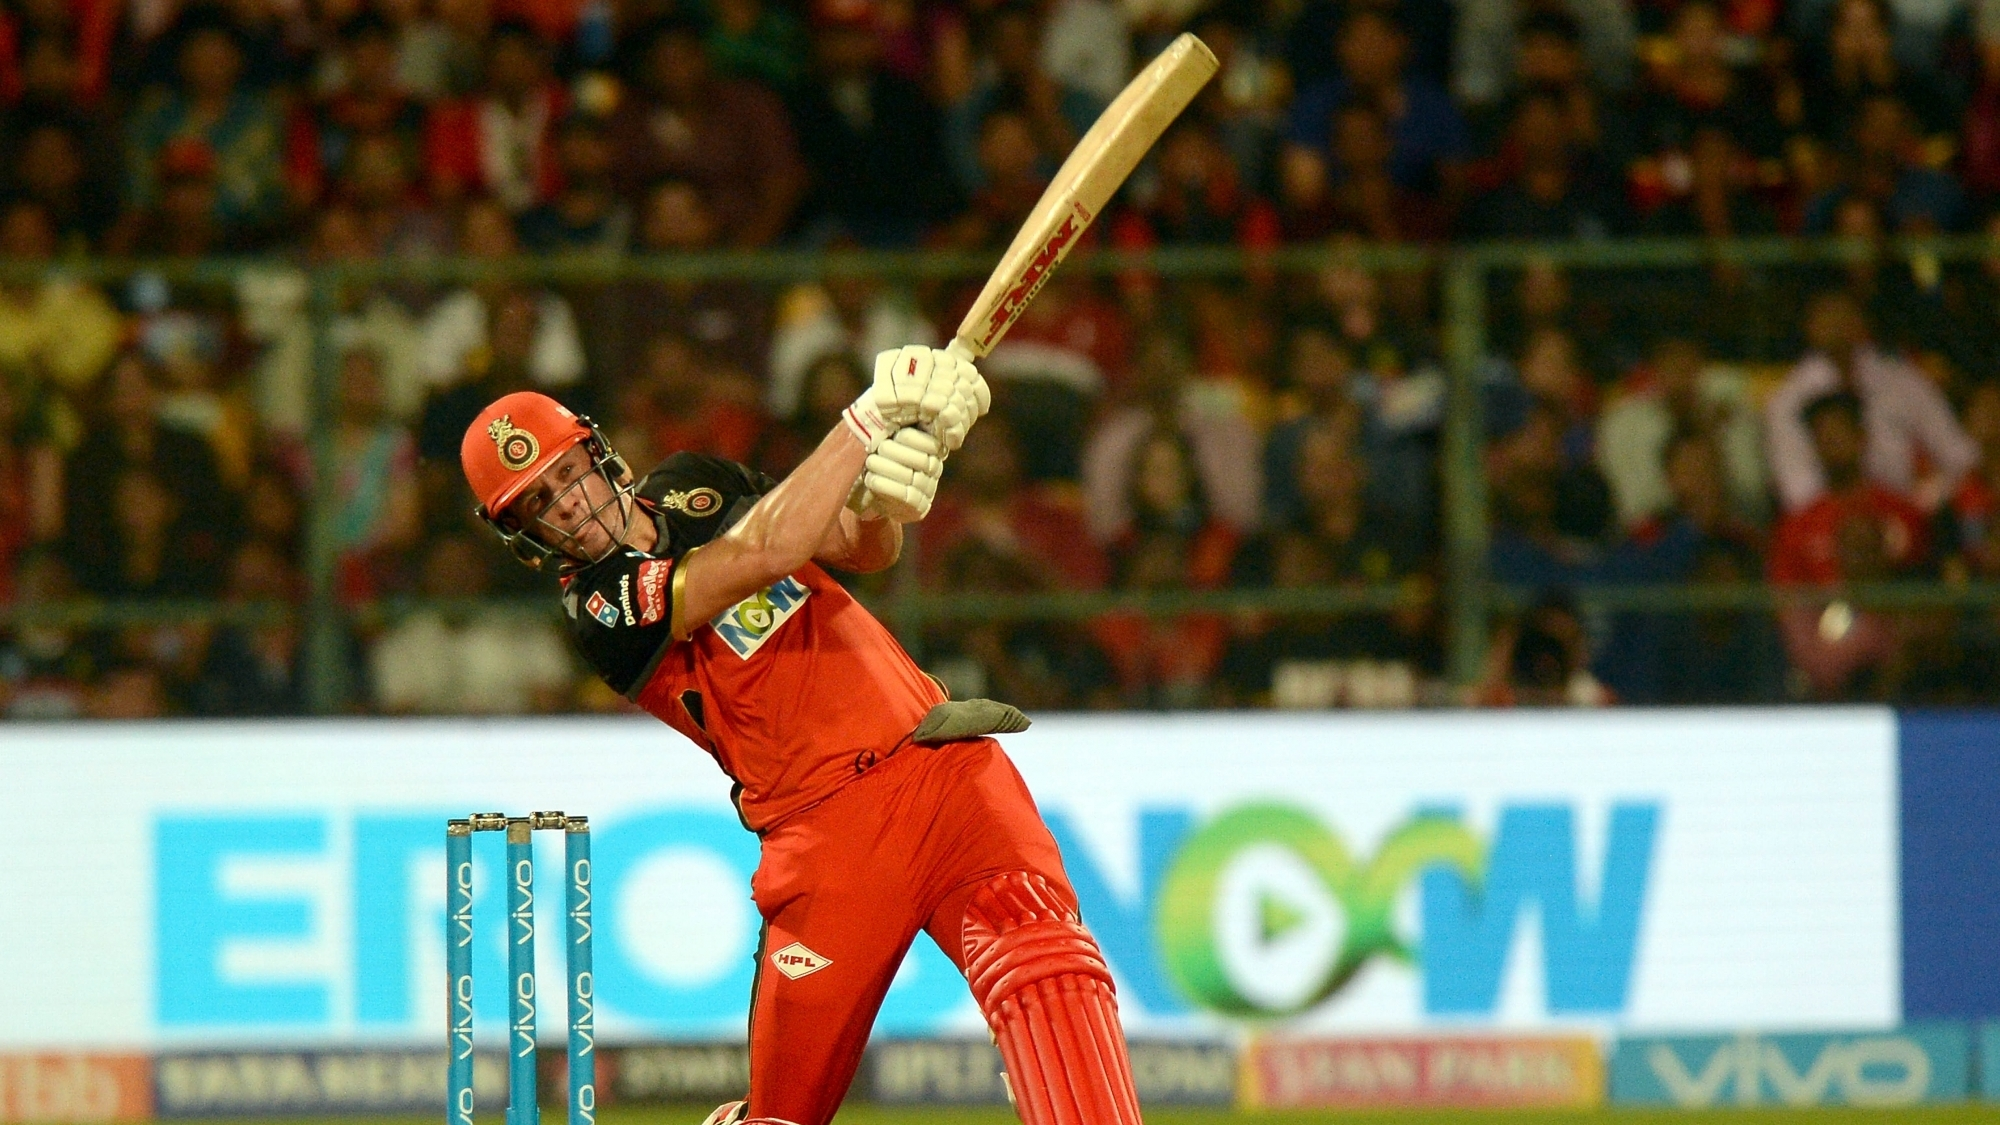 IPL 2018: AB De Villiers sheds light on his match winning innings against Delhi Daredevils